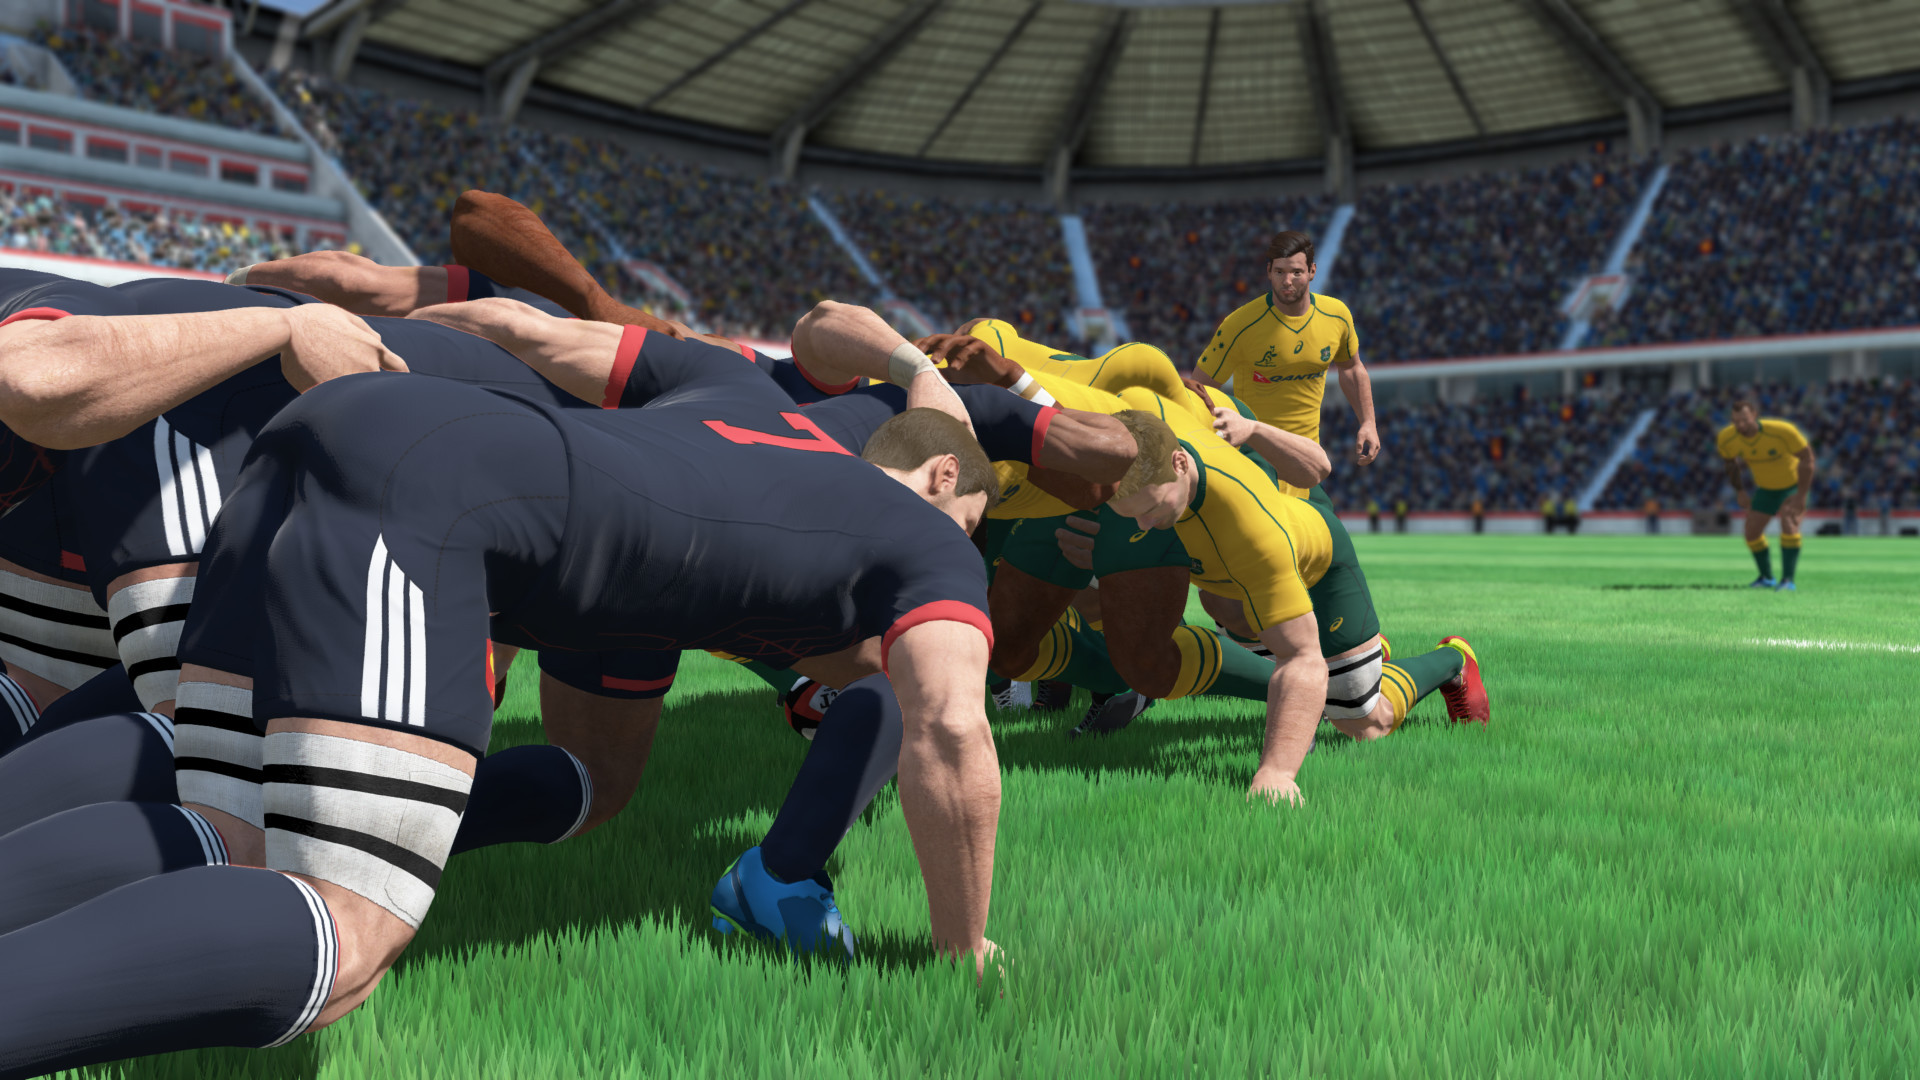 Photo of Rugby 18 is Now Available on PS4, Xbox One and PC